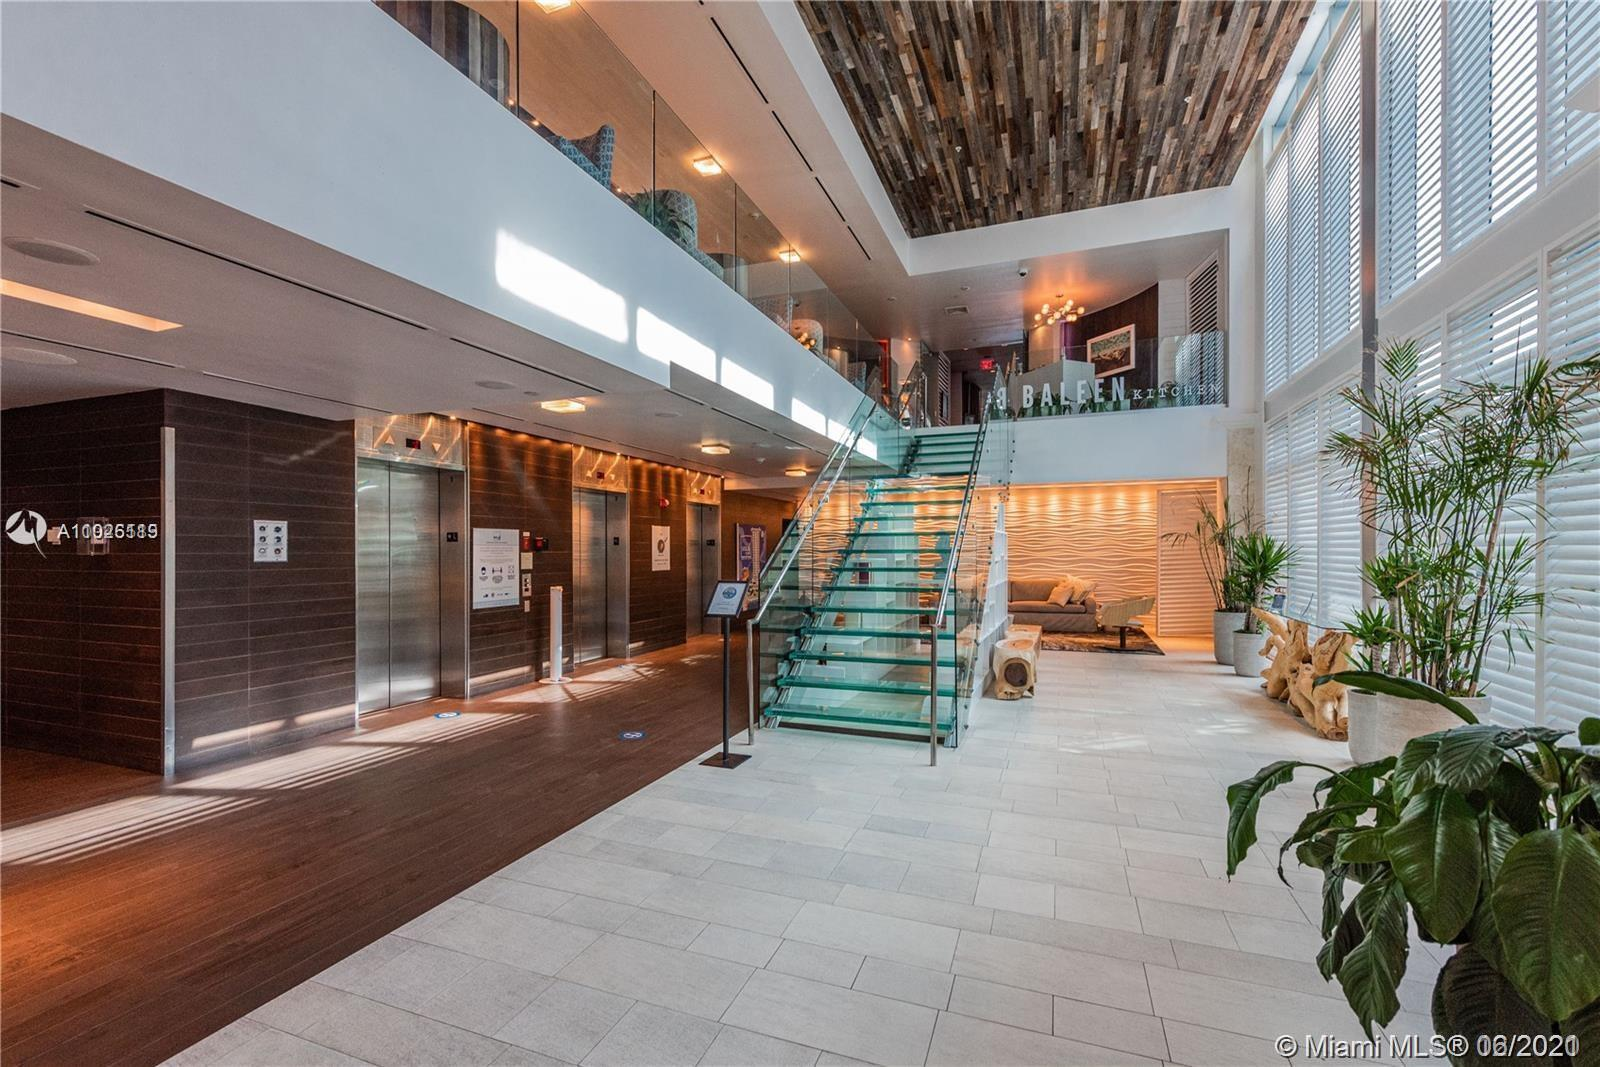 Condo-Hotel Manager Noble House Hotels and Resorts in the heart of Sunny Isles, Experience Miami at